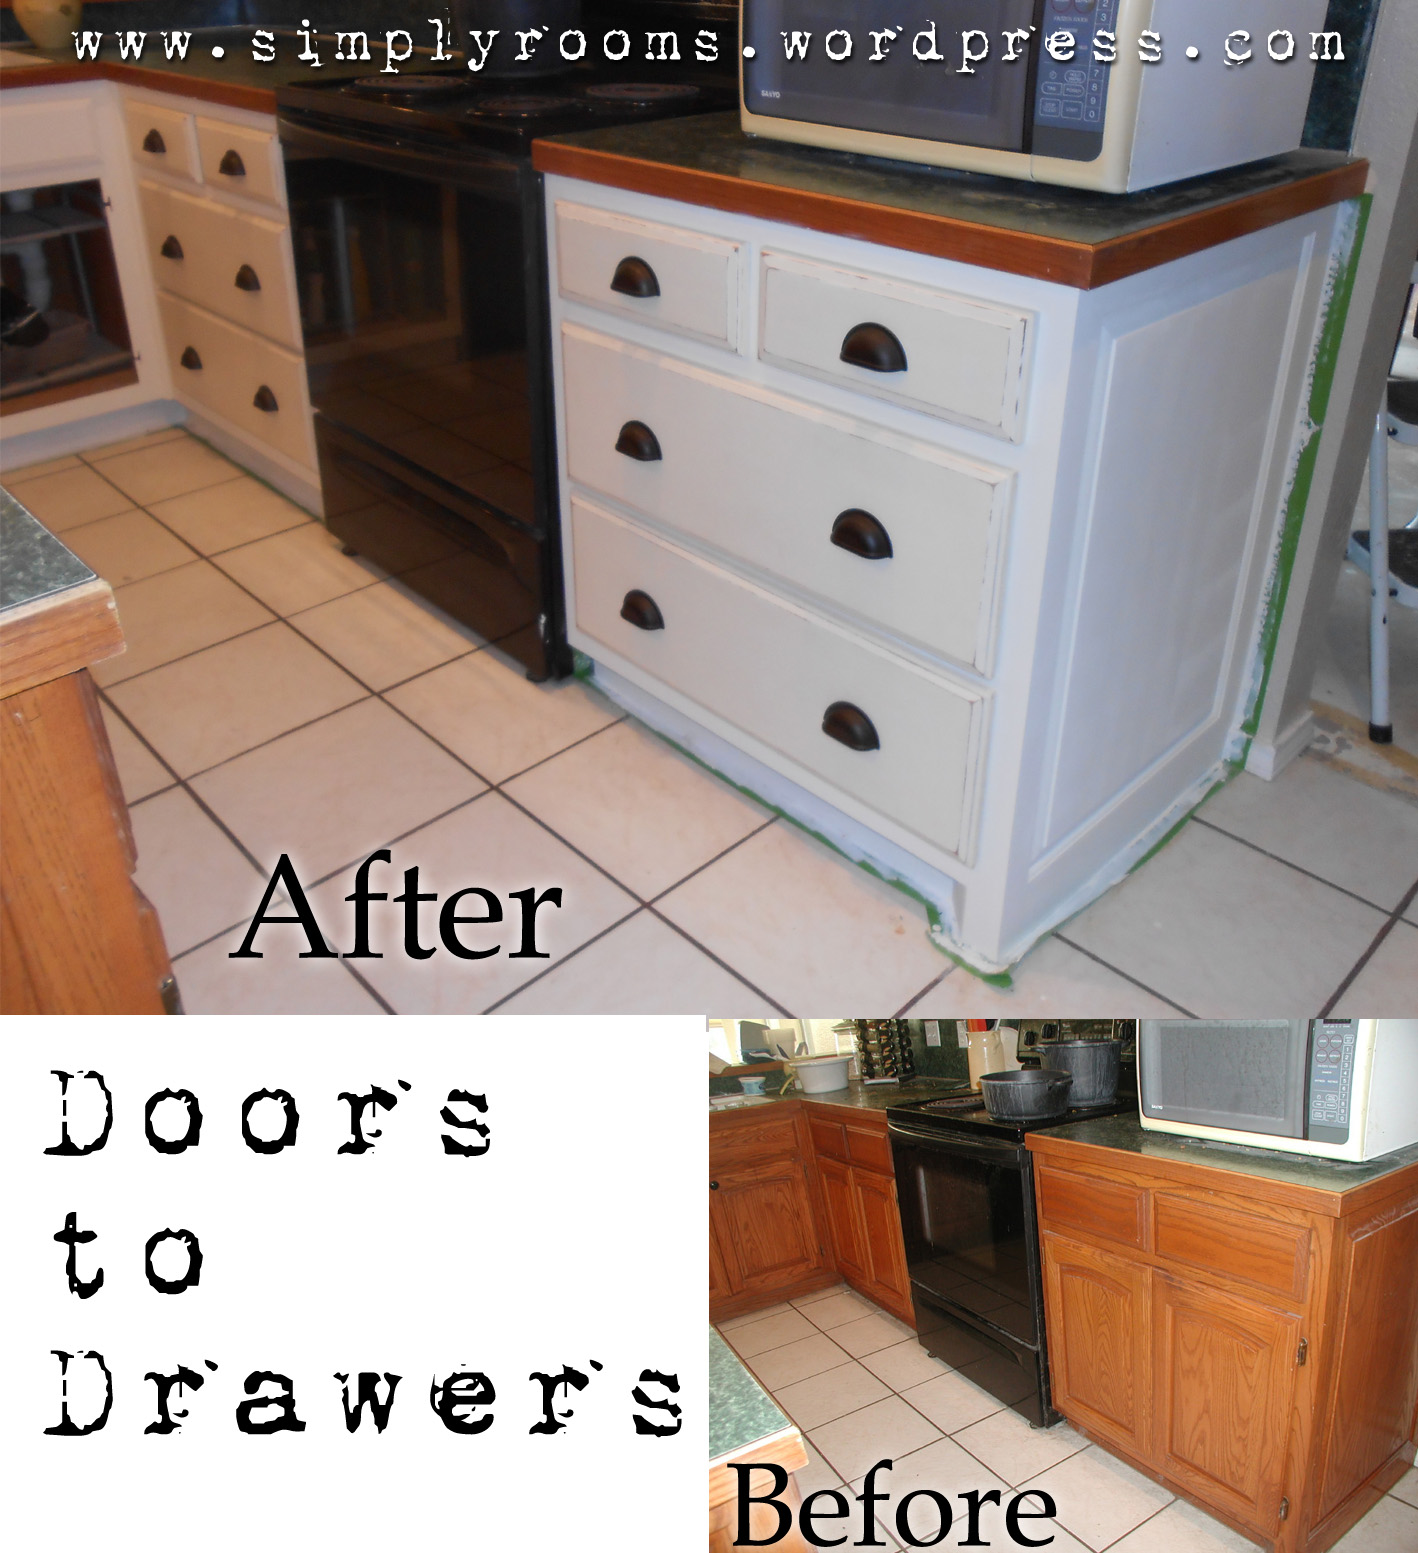 Kitchen Cabinet Door Painting: Painting Oak Kitchen Cabinetry With Chalk Paint (drawers